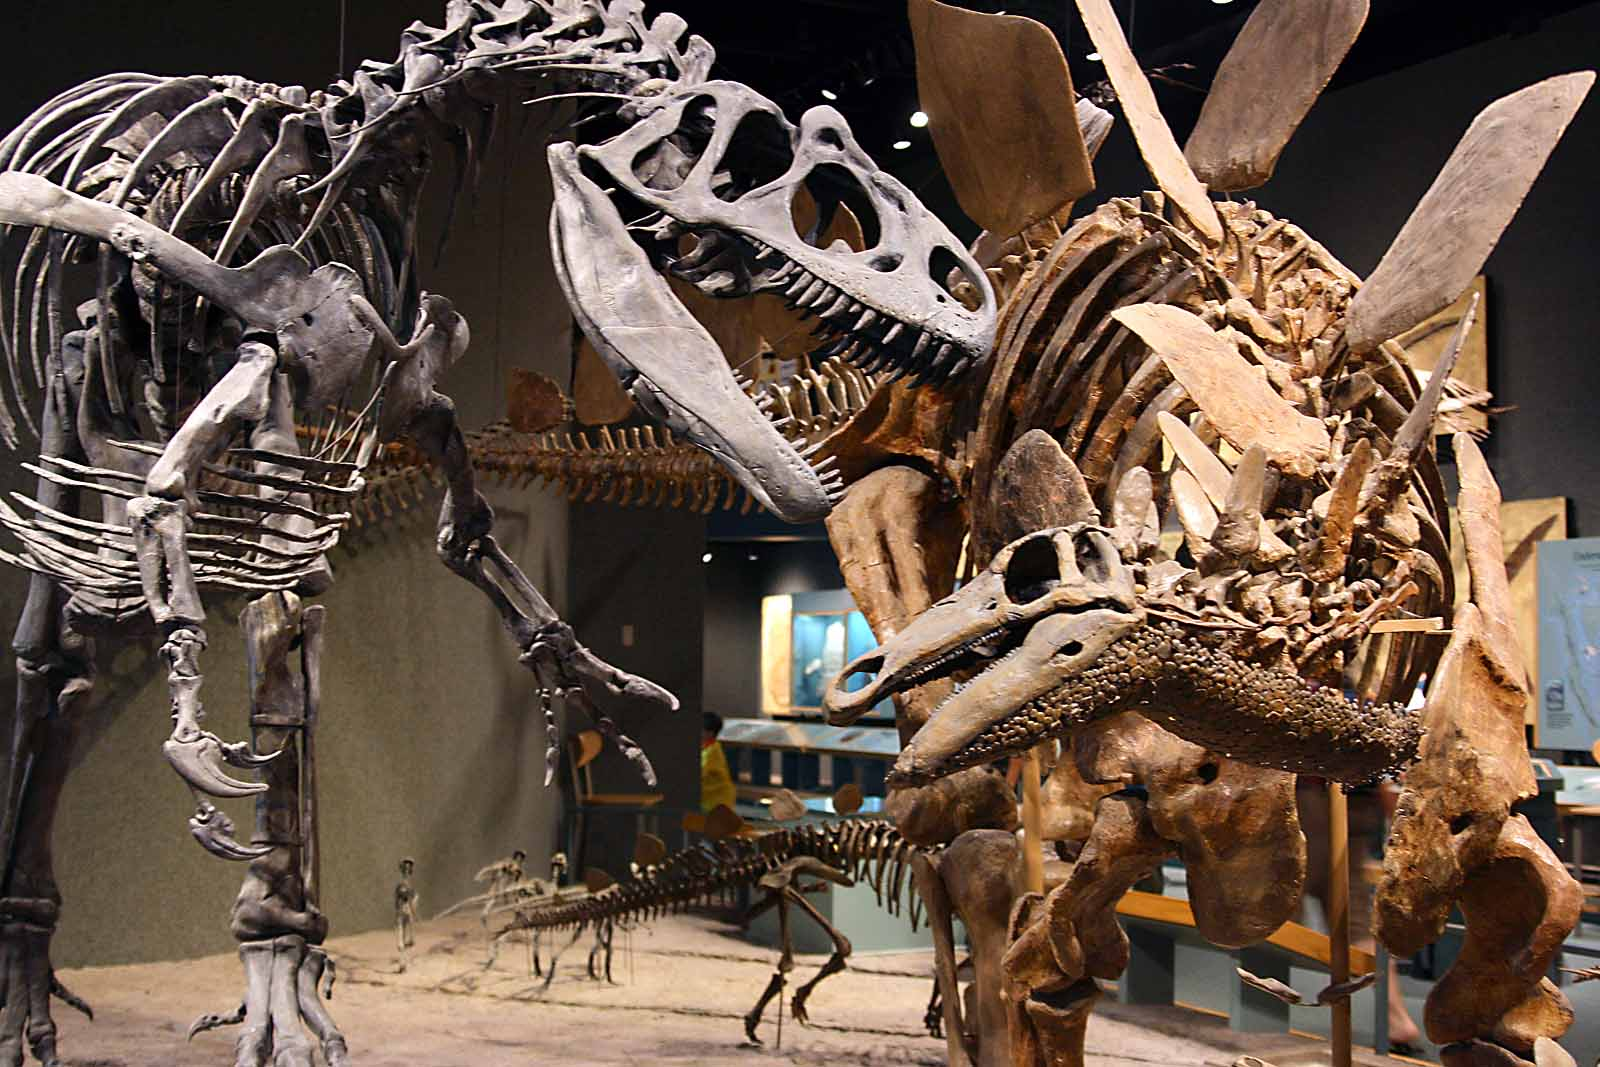 These skeletons are on display in the Prehistoric Journey exhibit, which explores the evolution of life on earth.